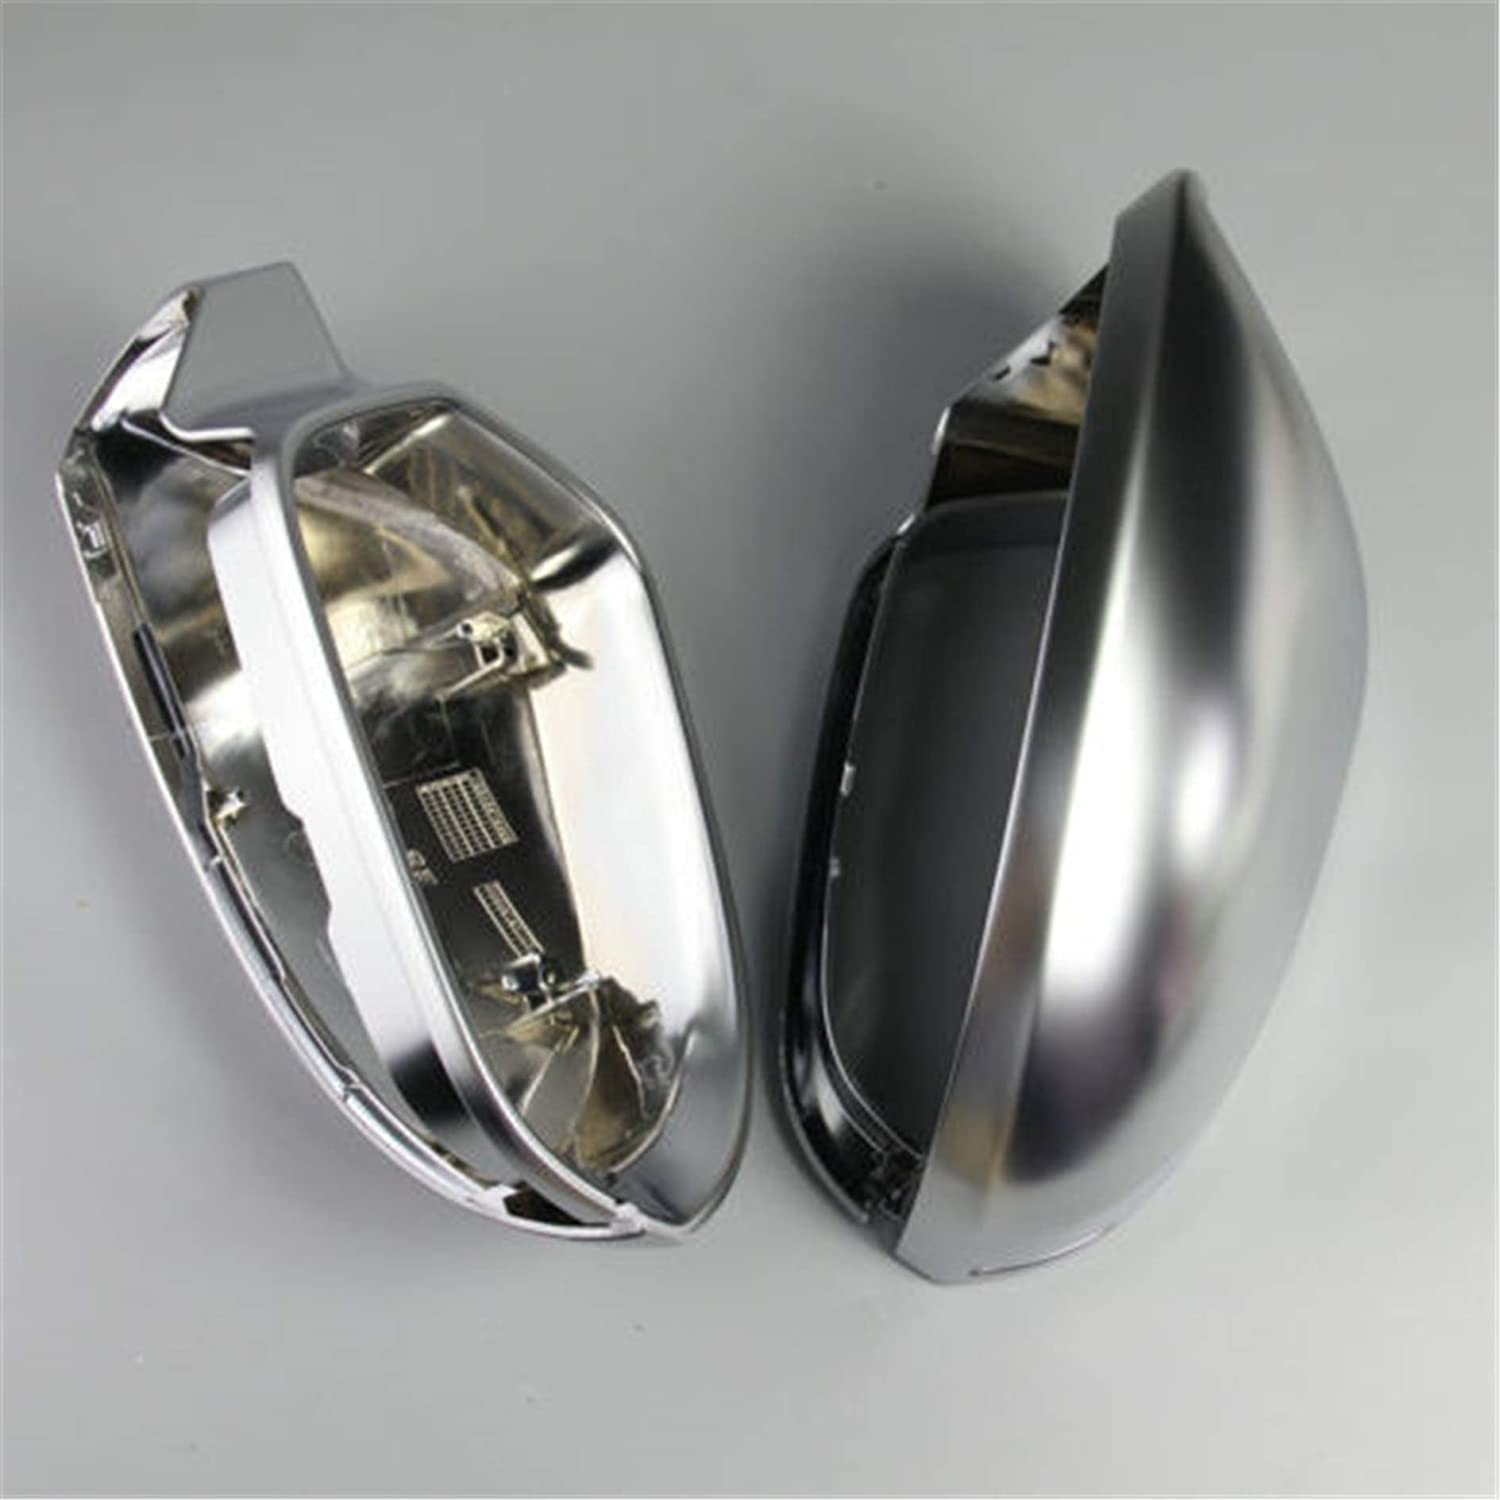 HDX Side Wing ABS Chrome Rear View Mirror Replacement Cover Cap for Audi Sline Quattro A3 S3 2010-2013 8P BF630